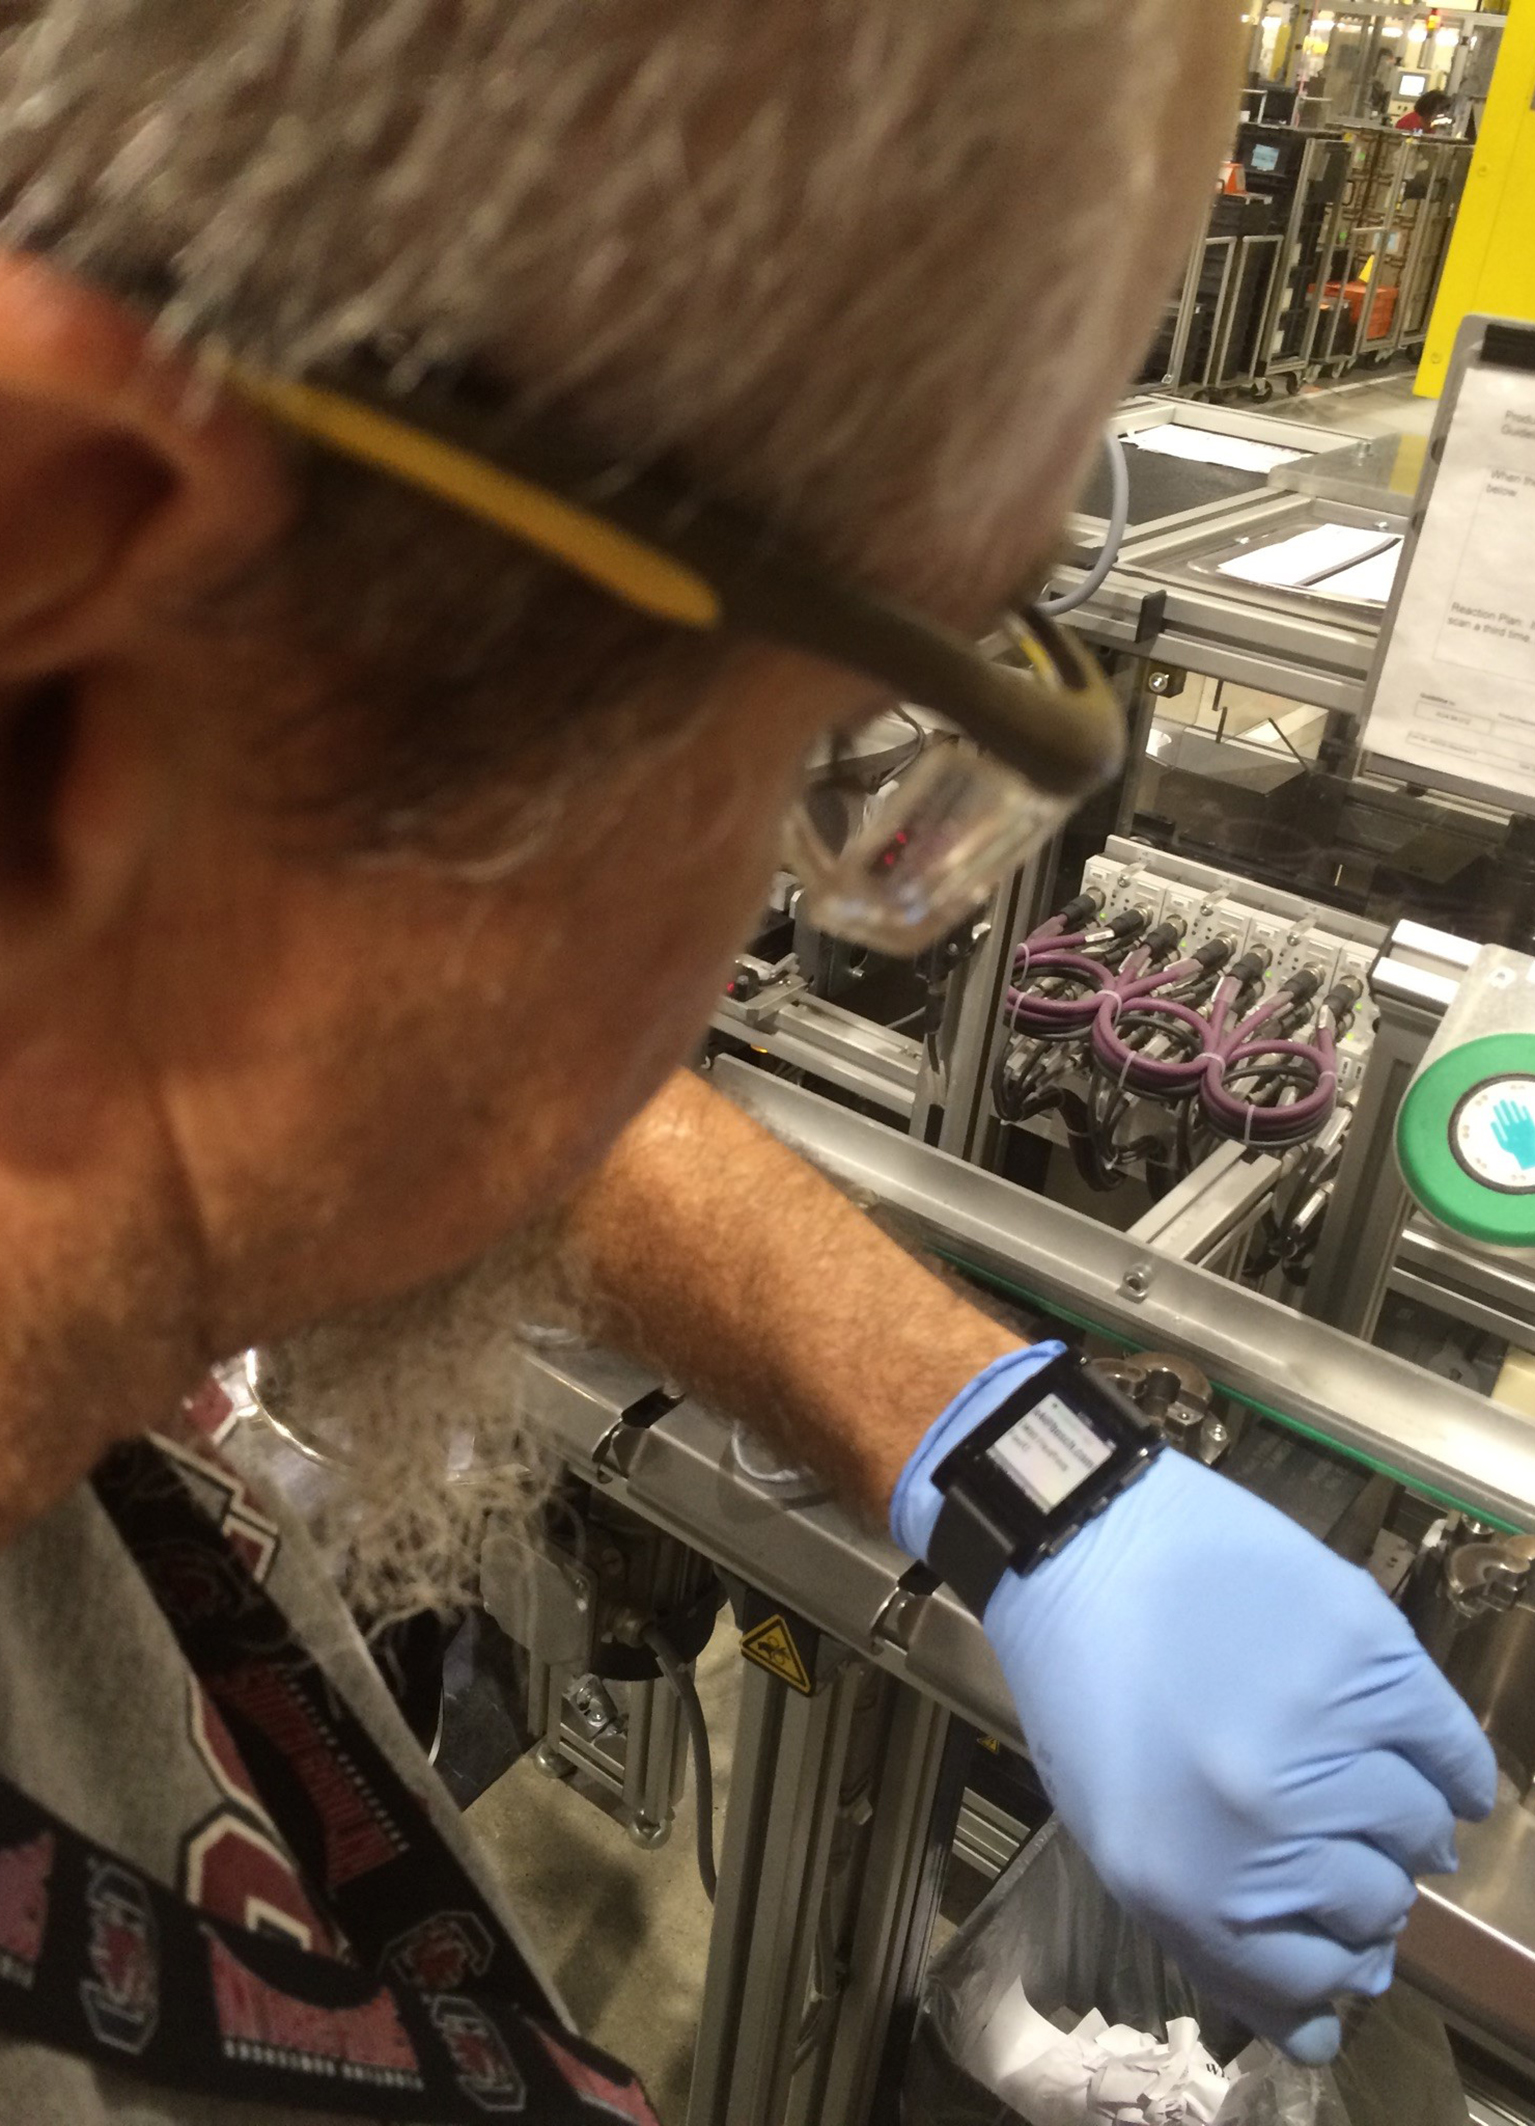 Bosch using smartwatches in production in the United States